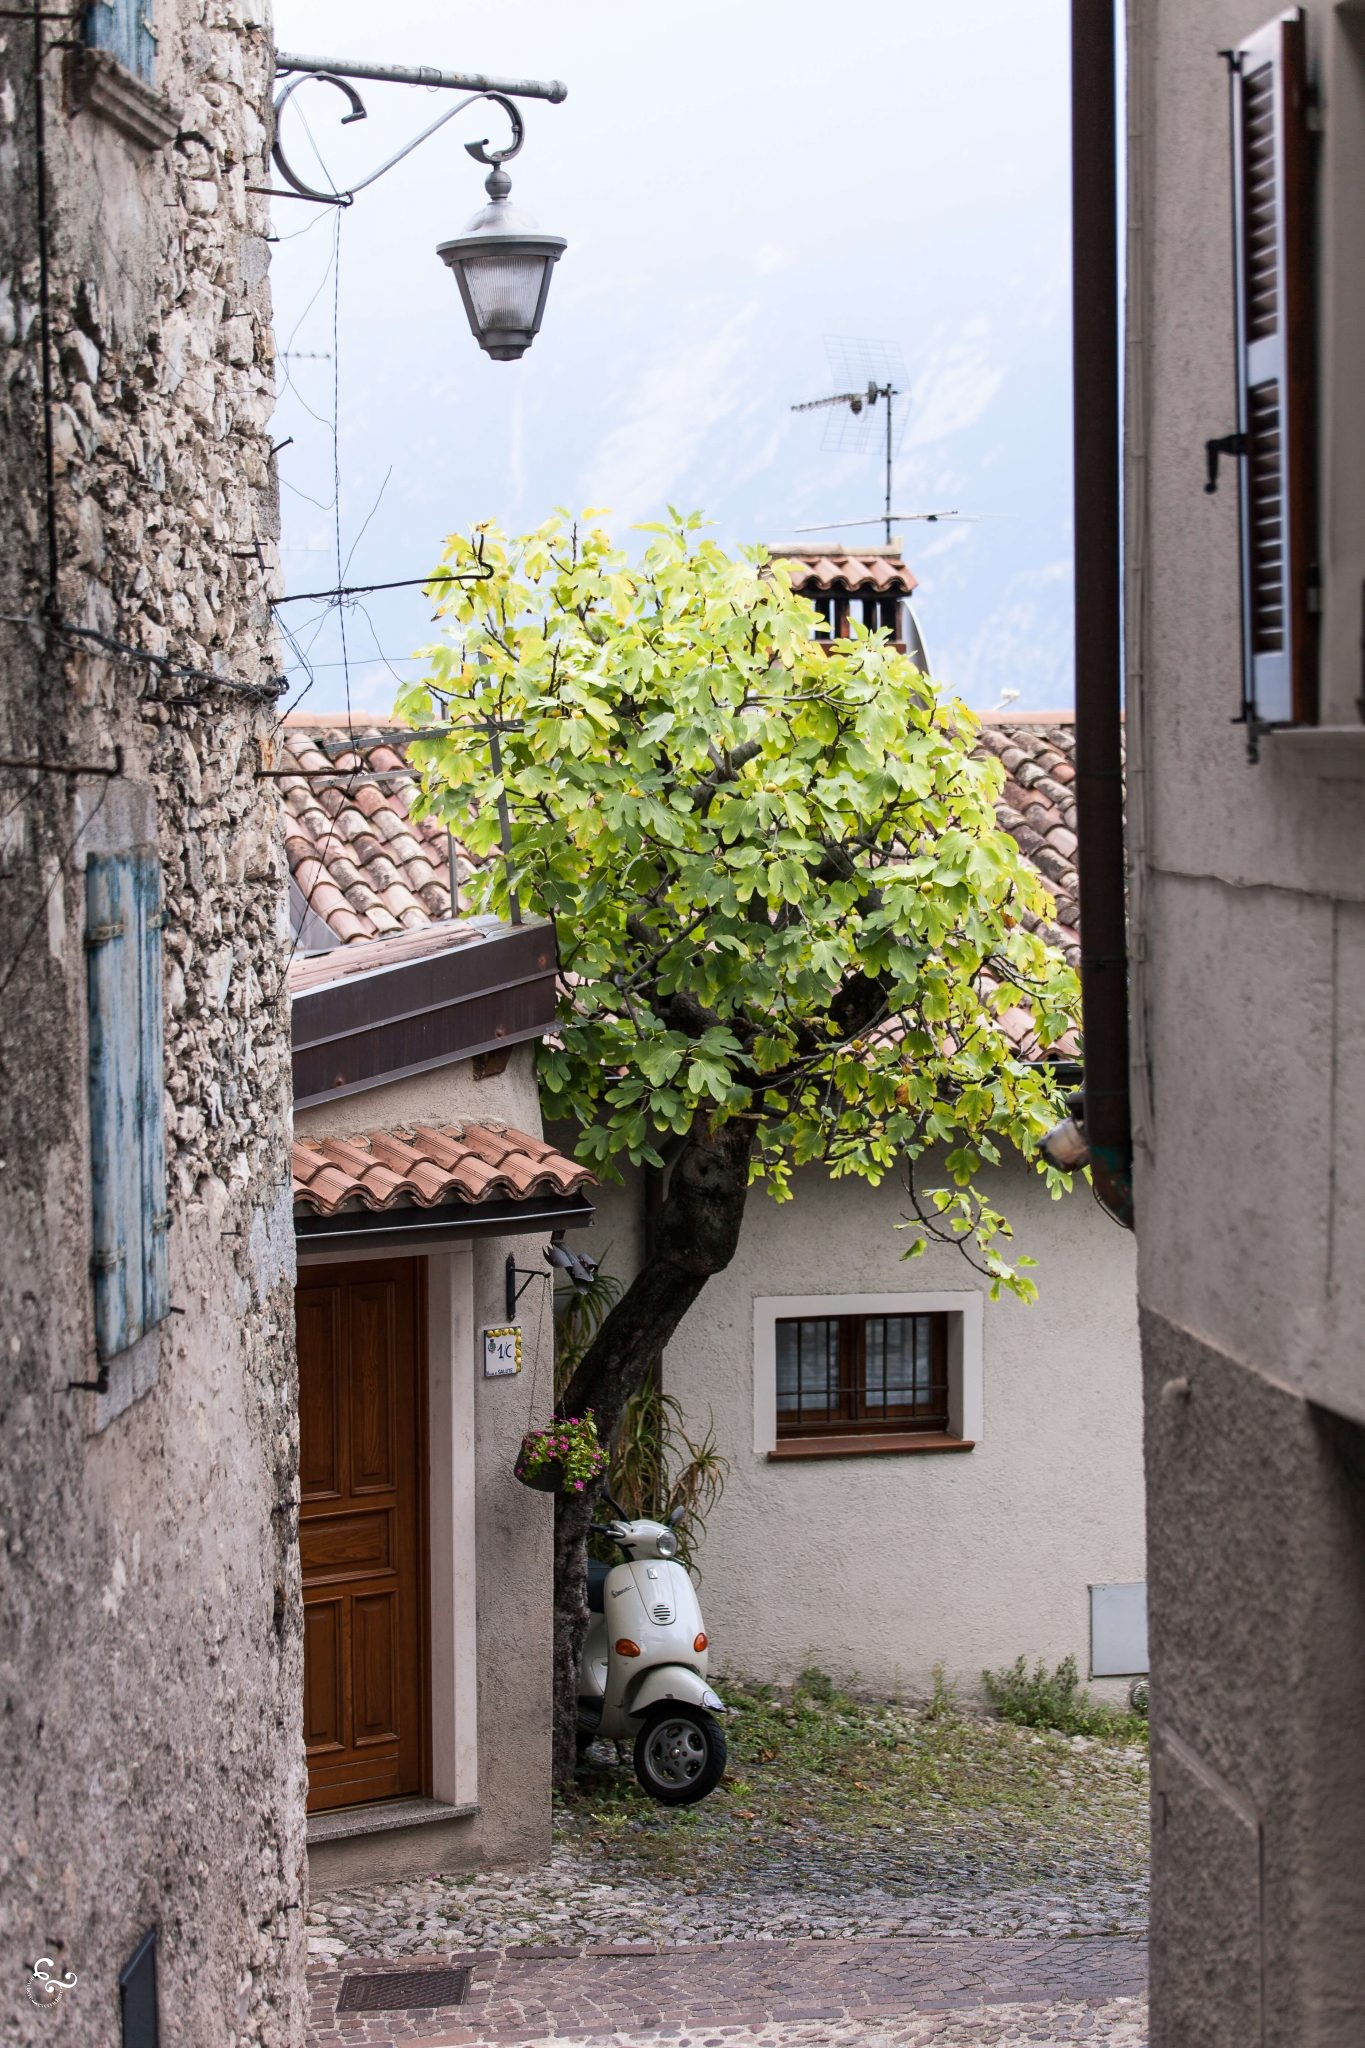 Limone sul la garda - Italy cute towns lake - Nowhere & Everywhere